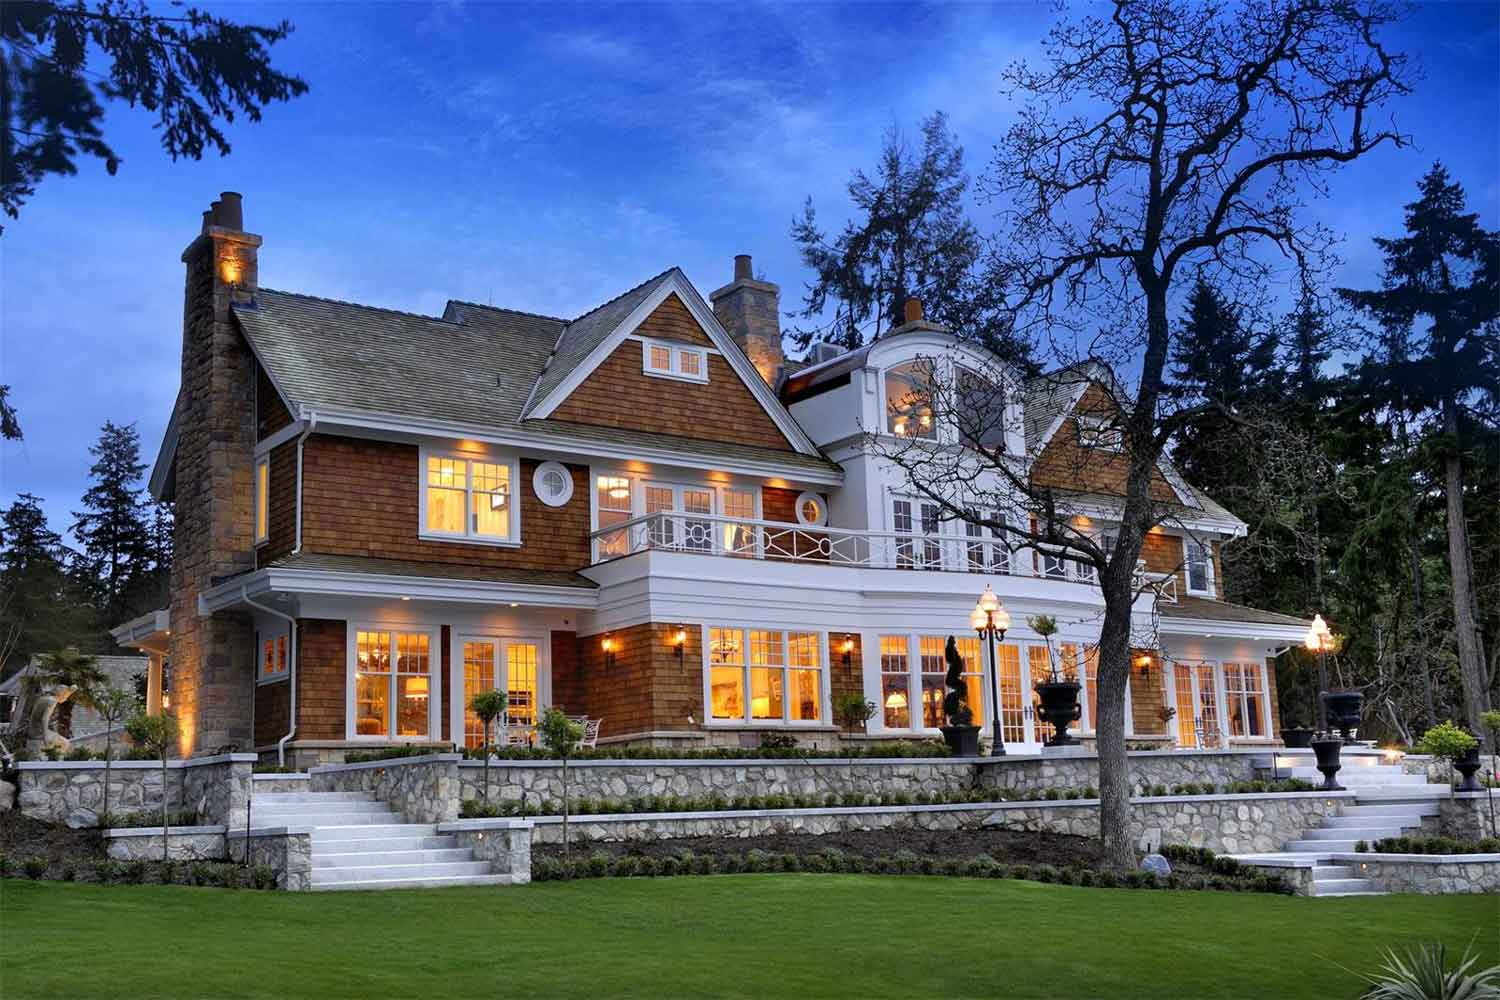 <b>Victoria, Canada</b><br/><i>4 Bedrooms, 9,400 sq. ft.</i><br/>Elegant home with landscaped gardens and infinity pool